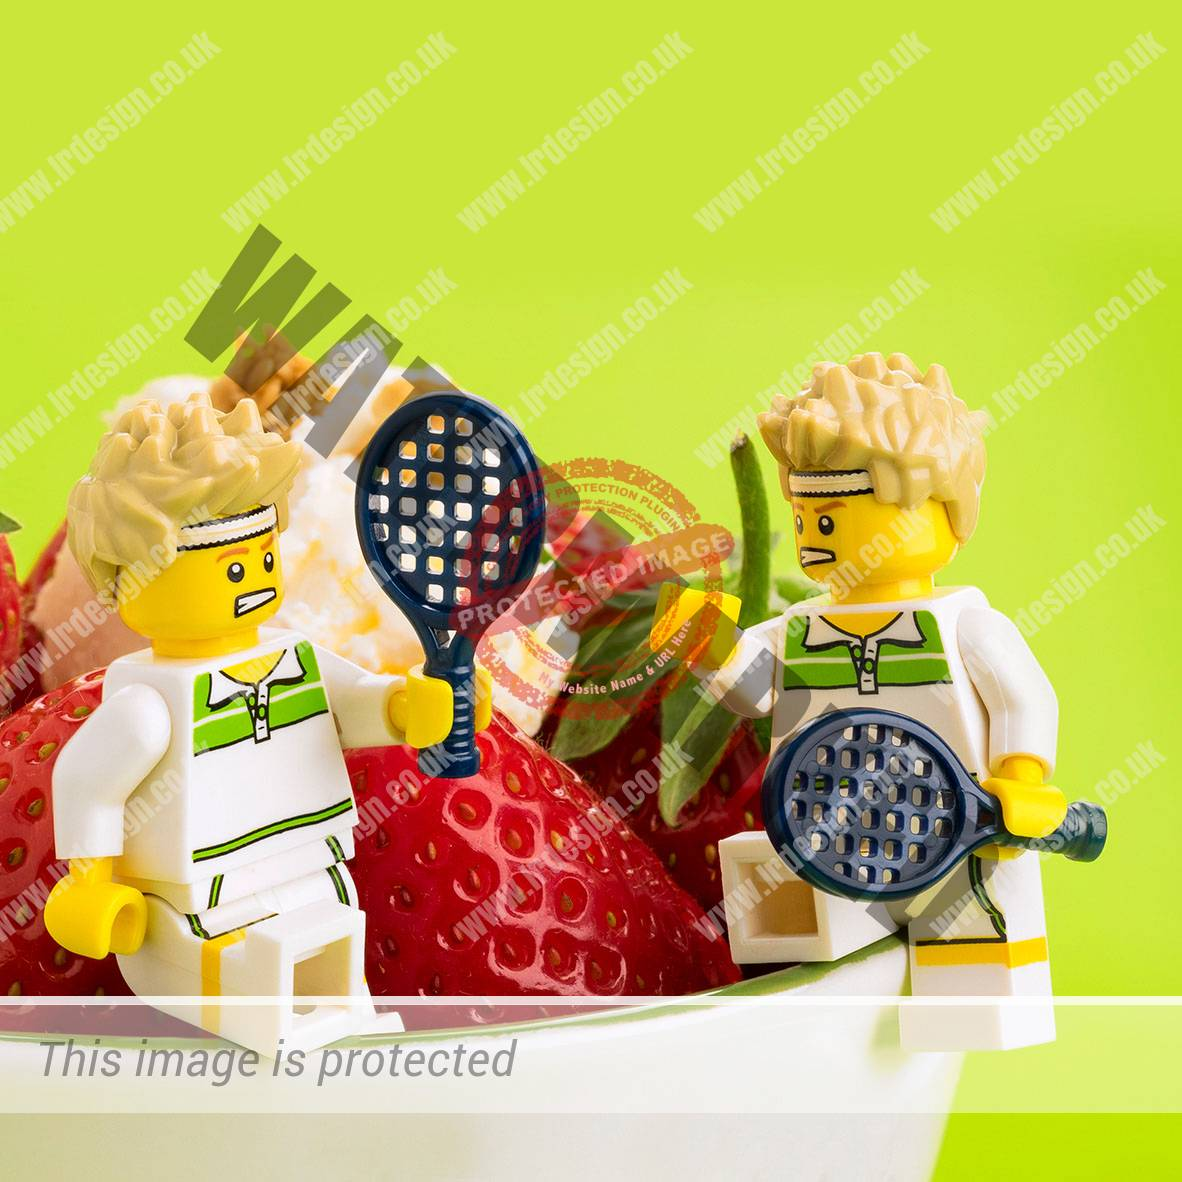 Lego characters playing tennis.